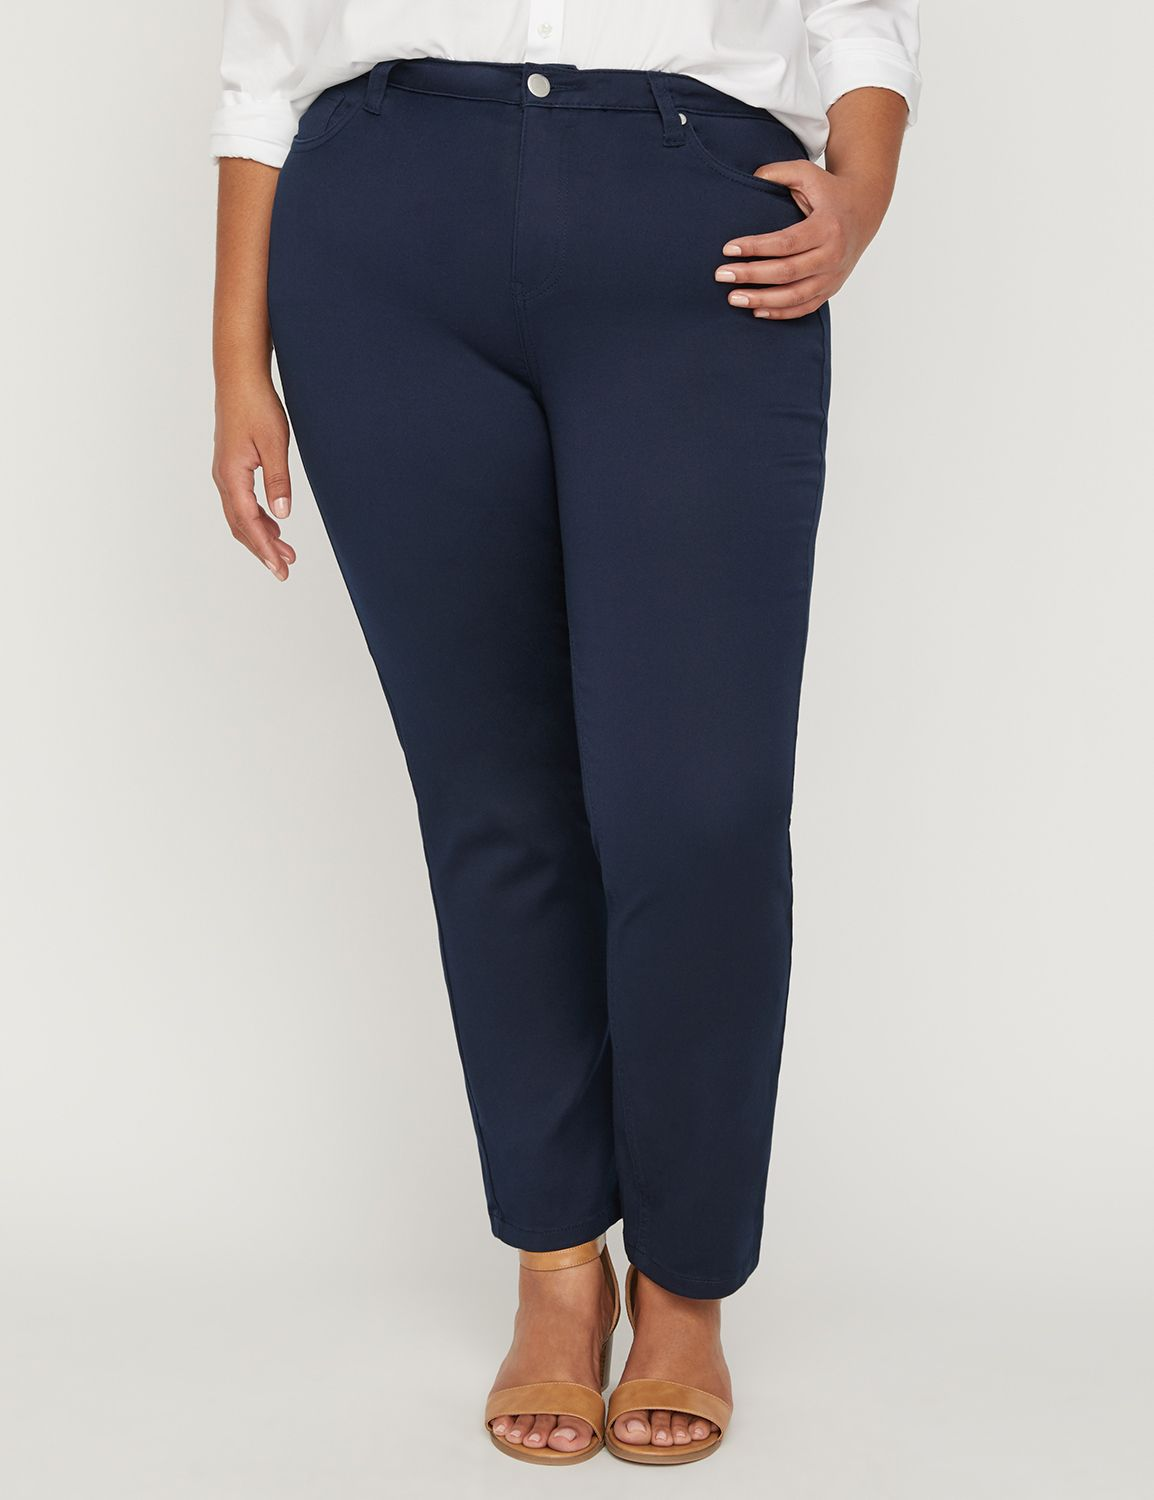 Modern Sateen Stretch Pant Done MP-300083343